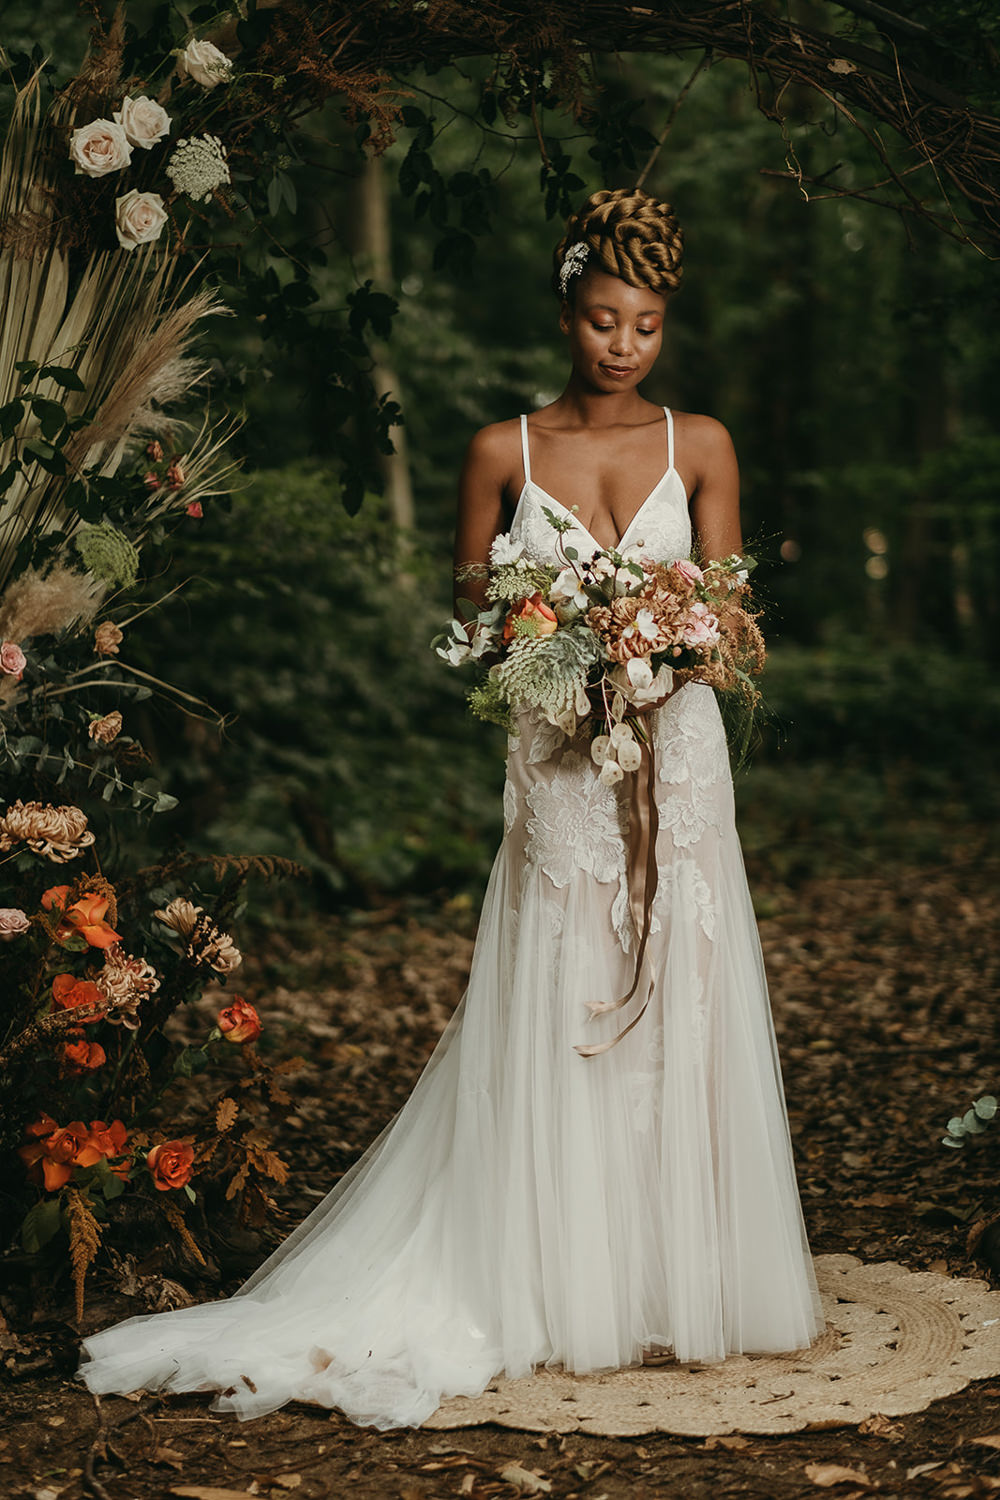 Dress Gown Bride Bridal Lace Tulle Straps Woods Wedding Tom Jeavons Photography